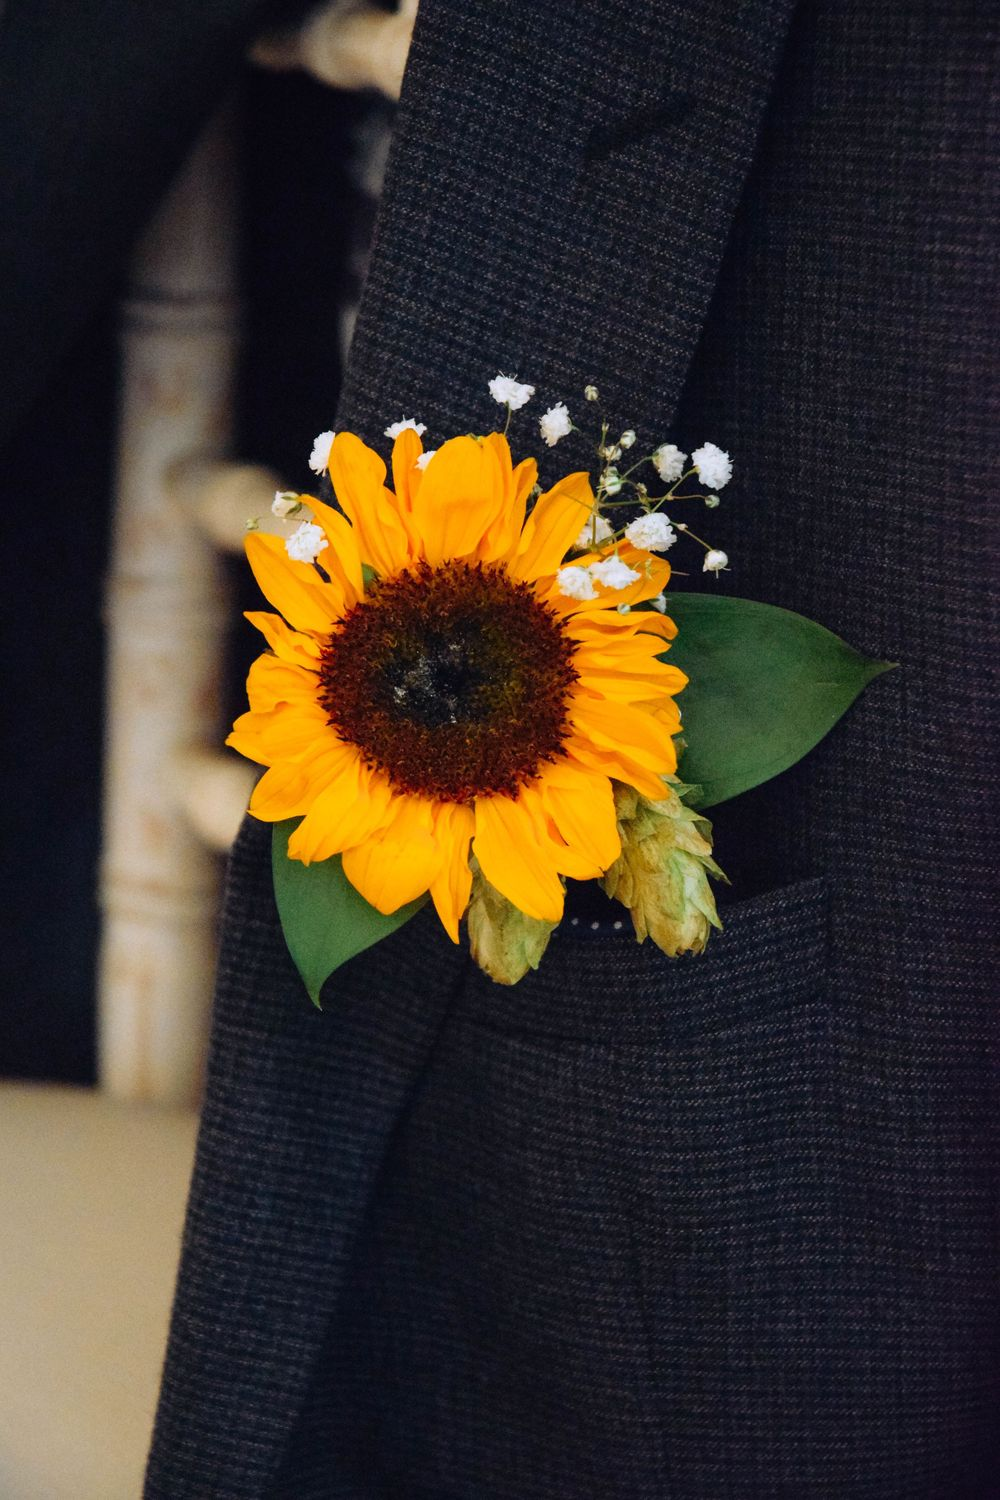 Zara Davis Wedding Photography near Stroud, Gloucestershire in the Cotswolds Flanesford Priory sunflower buttonhole